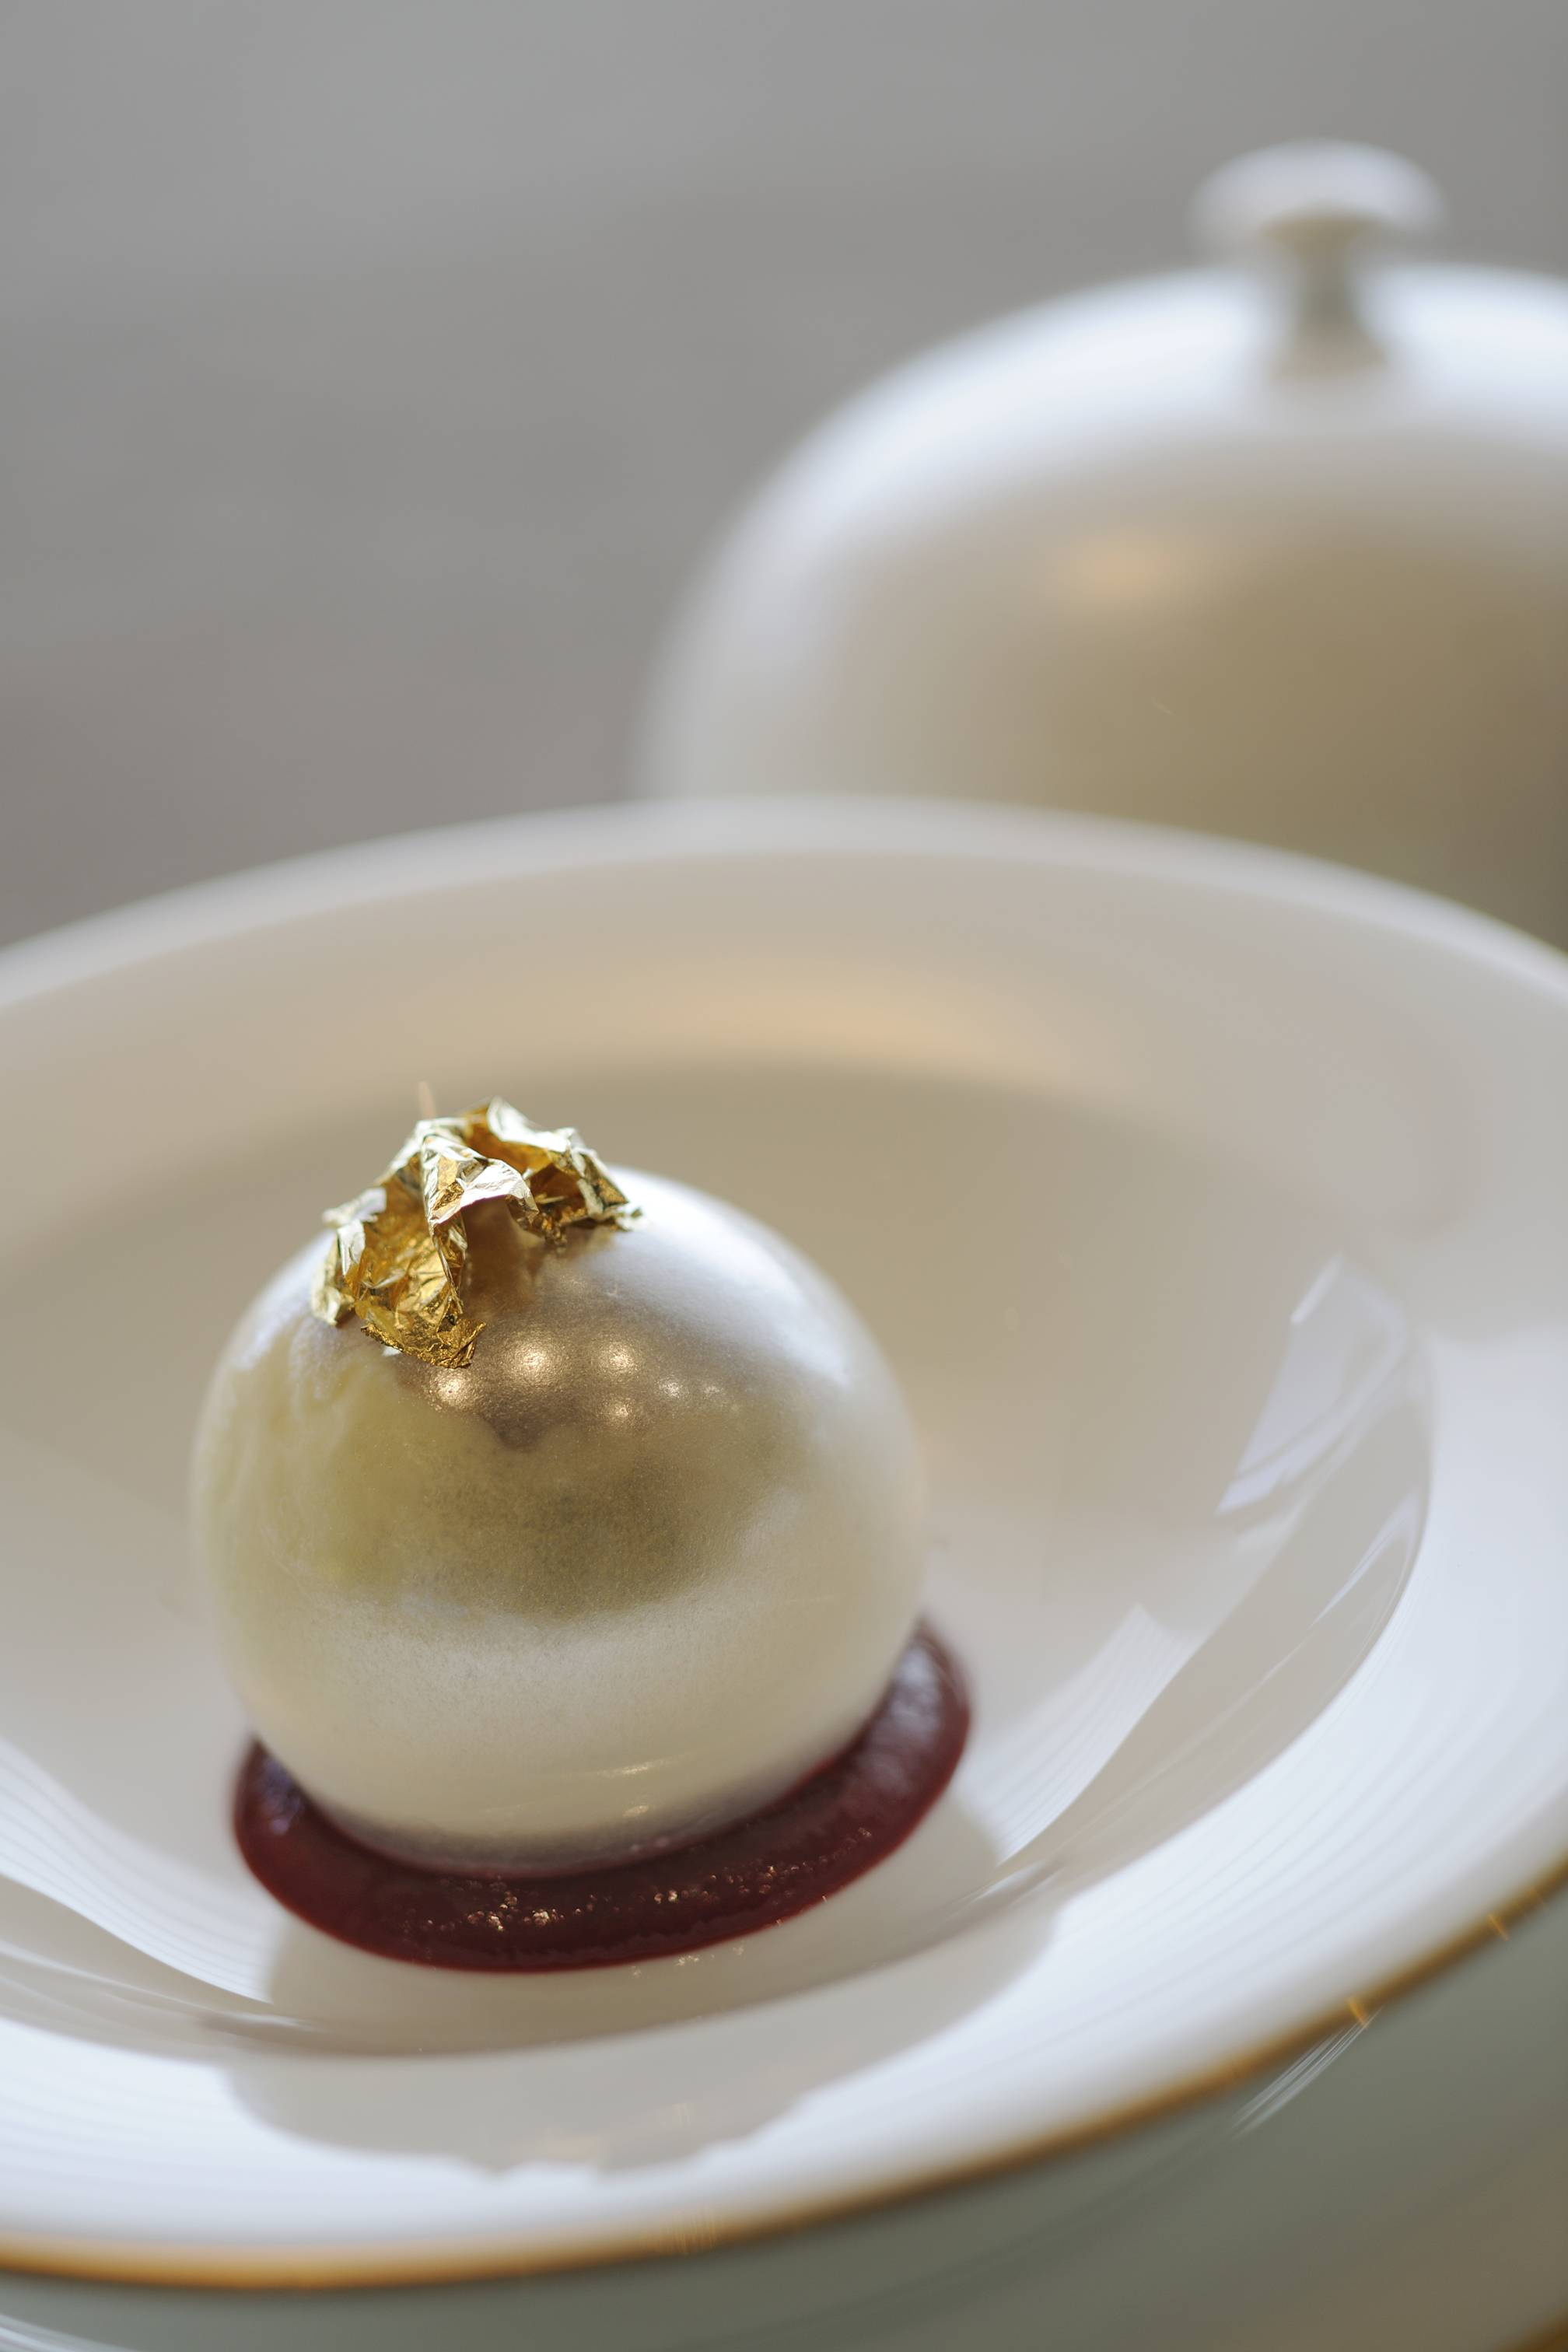 AHD – White Chocolate and Vanilla Sphere with Cassis Sorbet